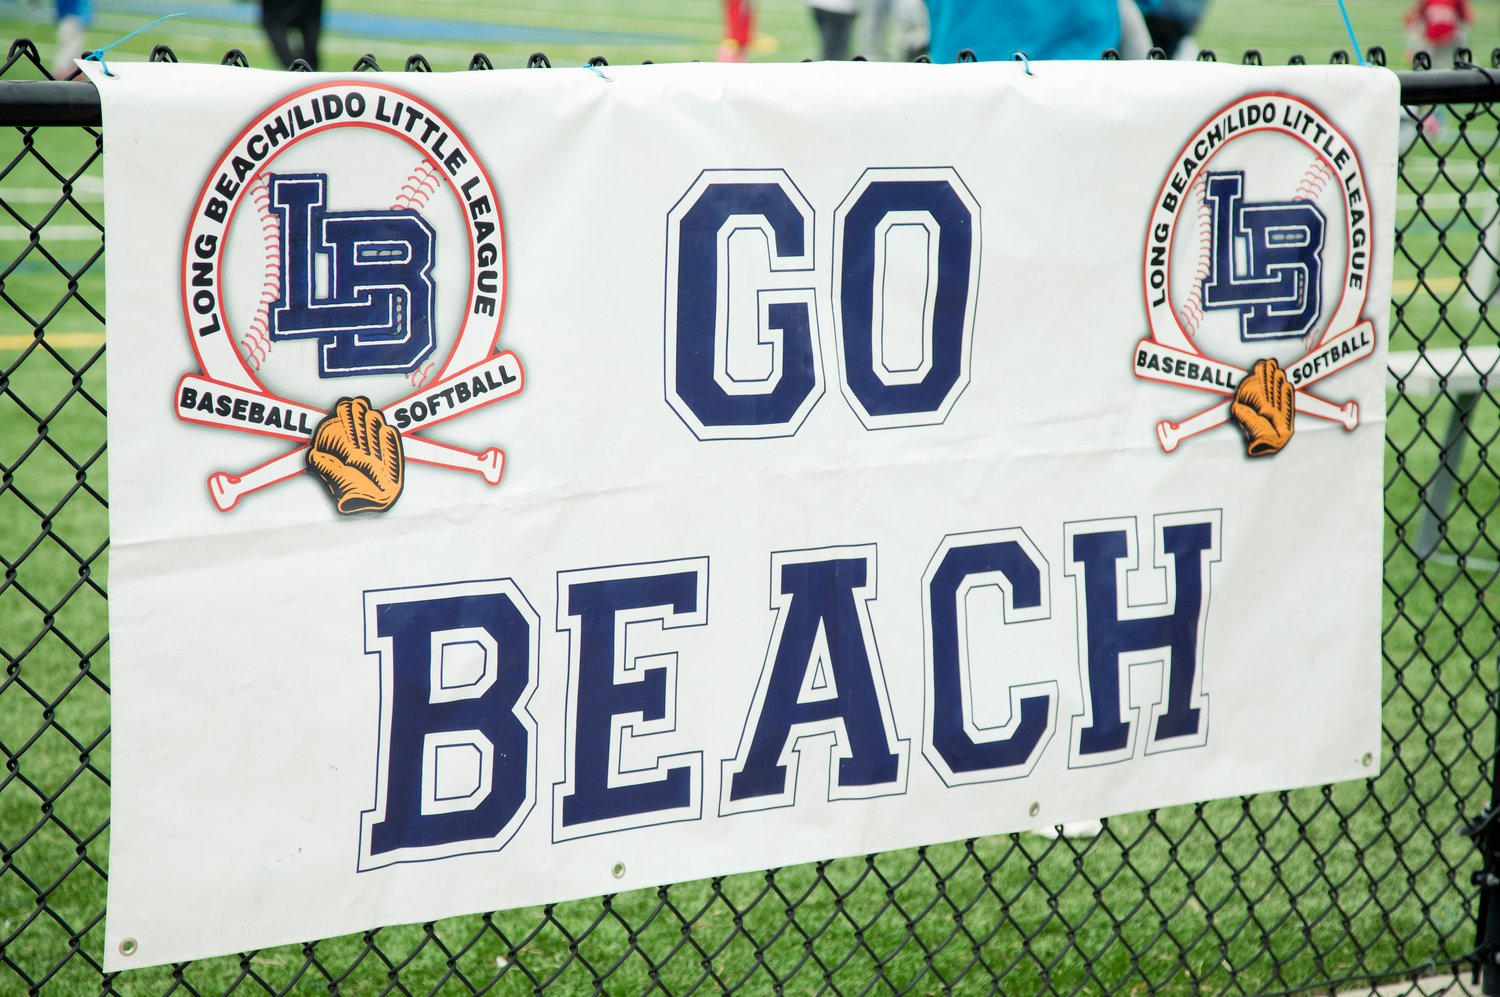 Long Beach and Lido Beach Little Leaguers are hopeful that they will be able to play in the spring season.